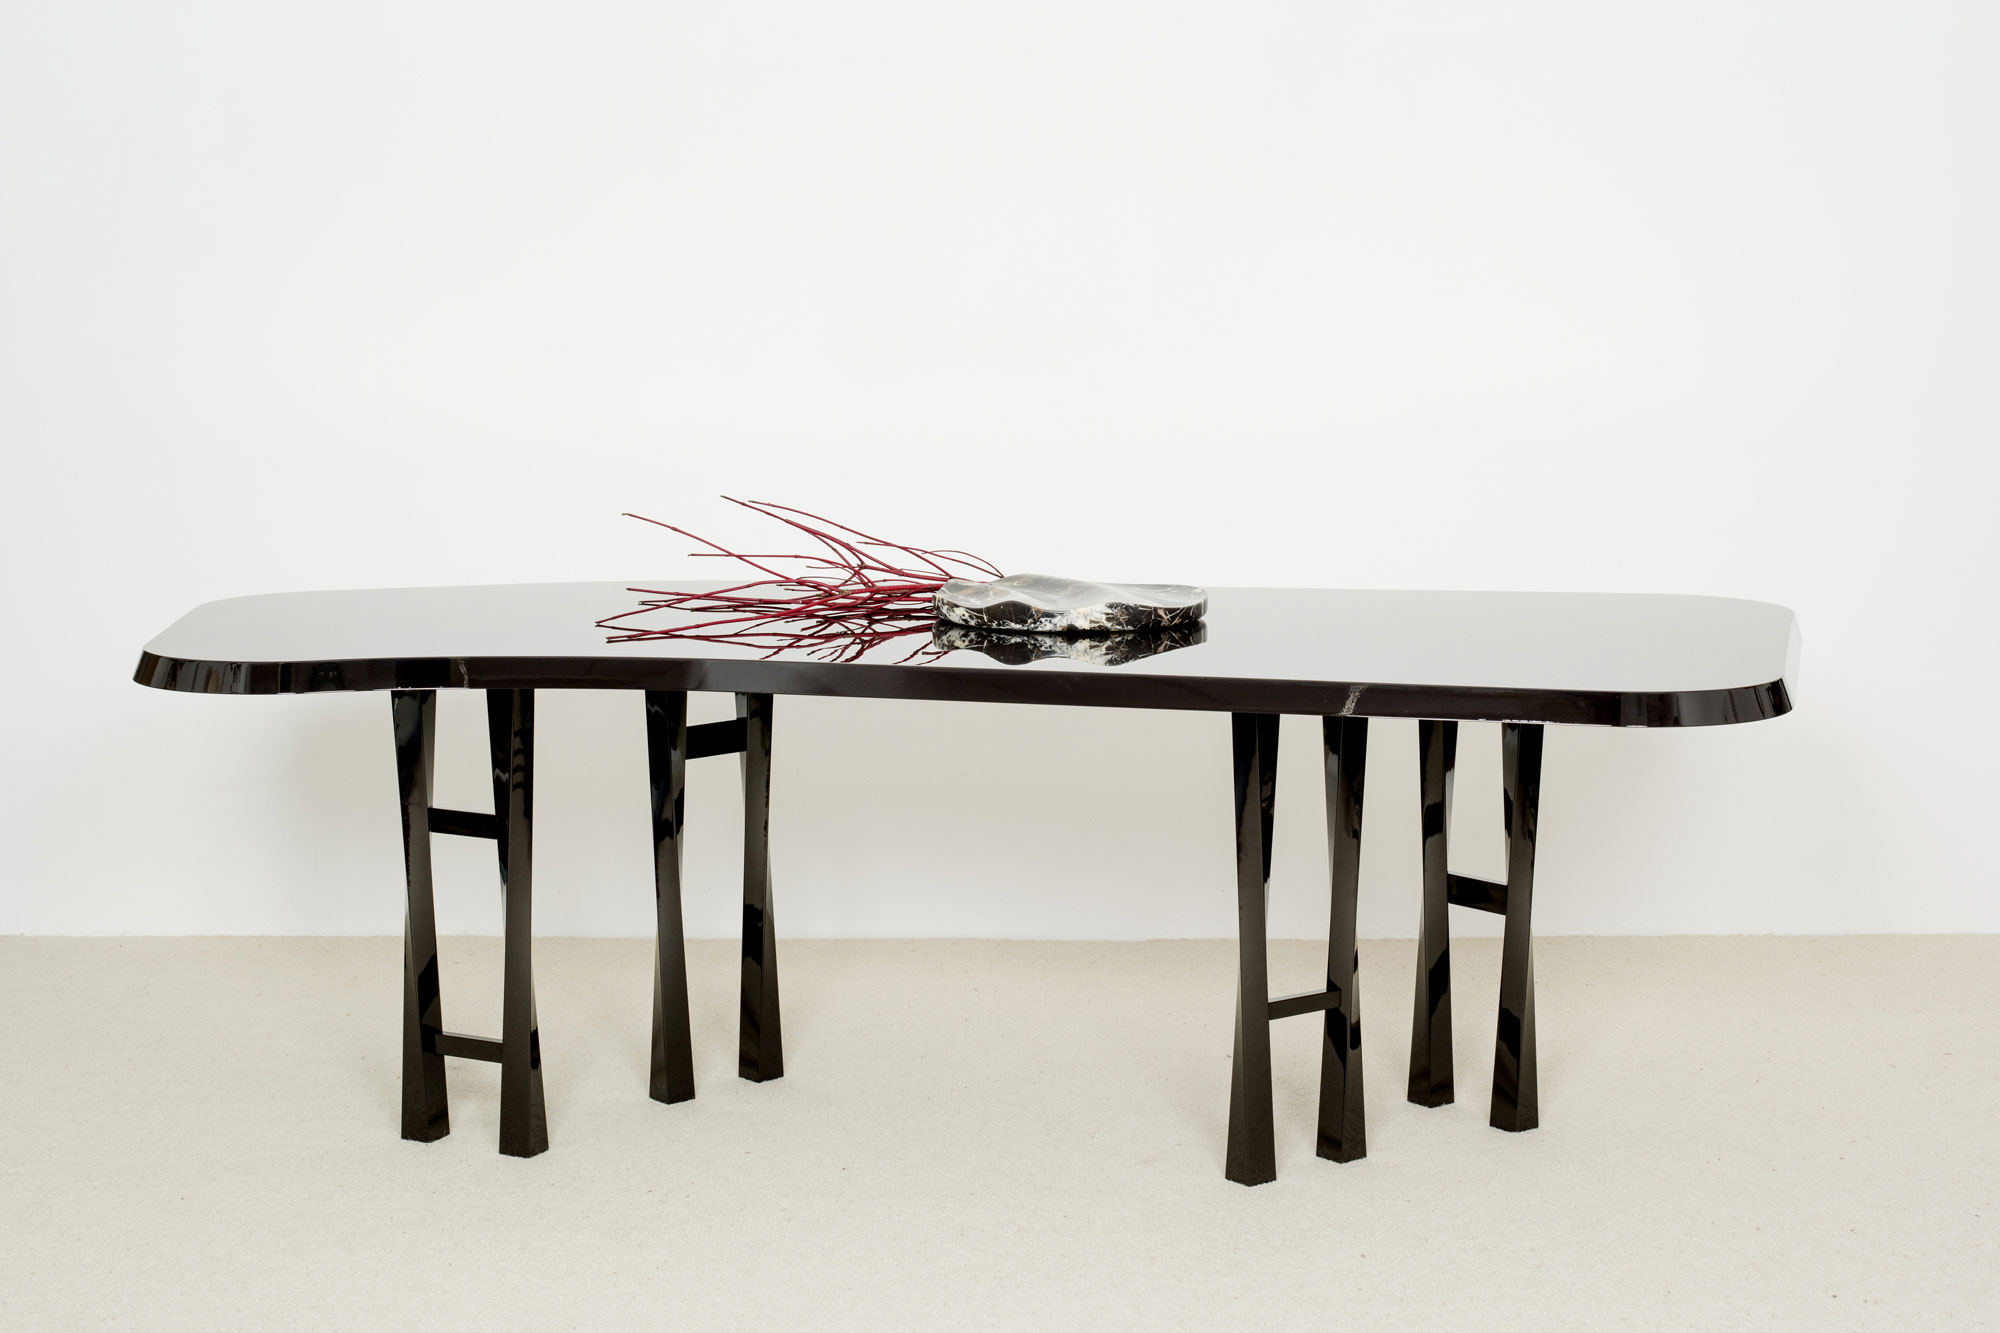 Twi Table - Christophe Delcourt